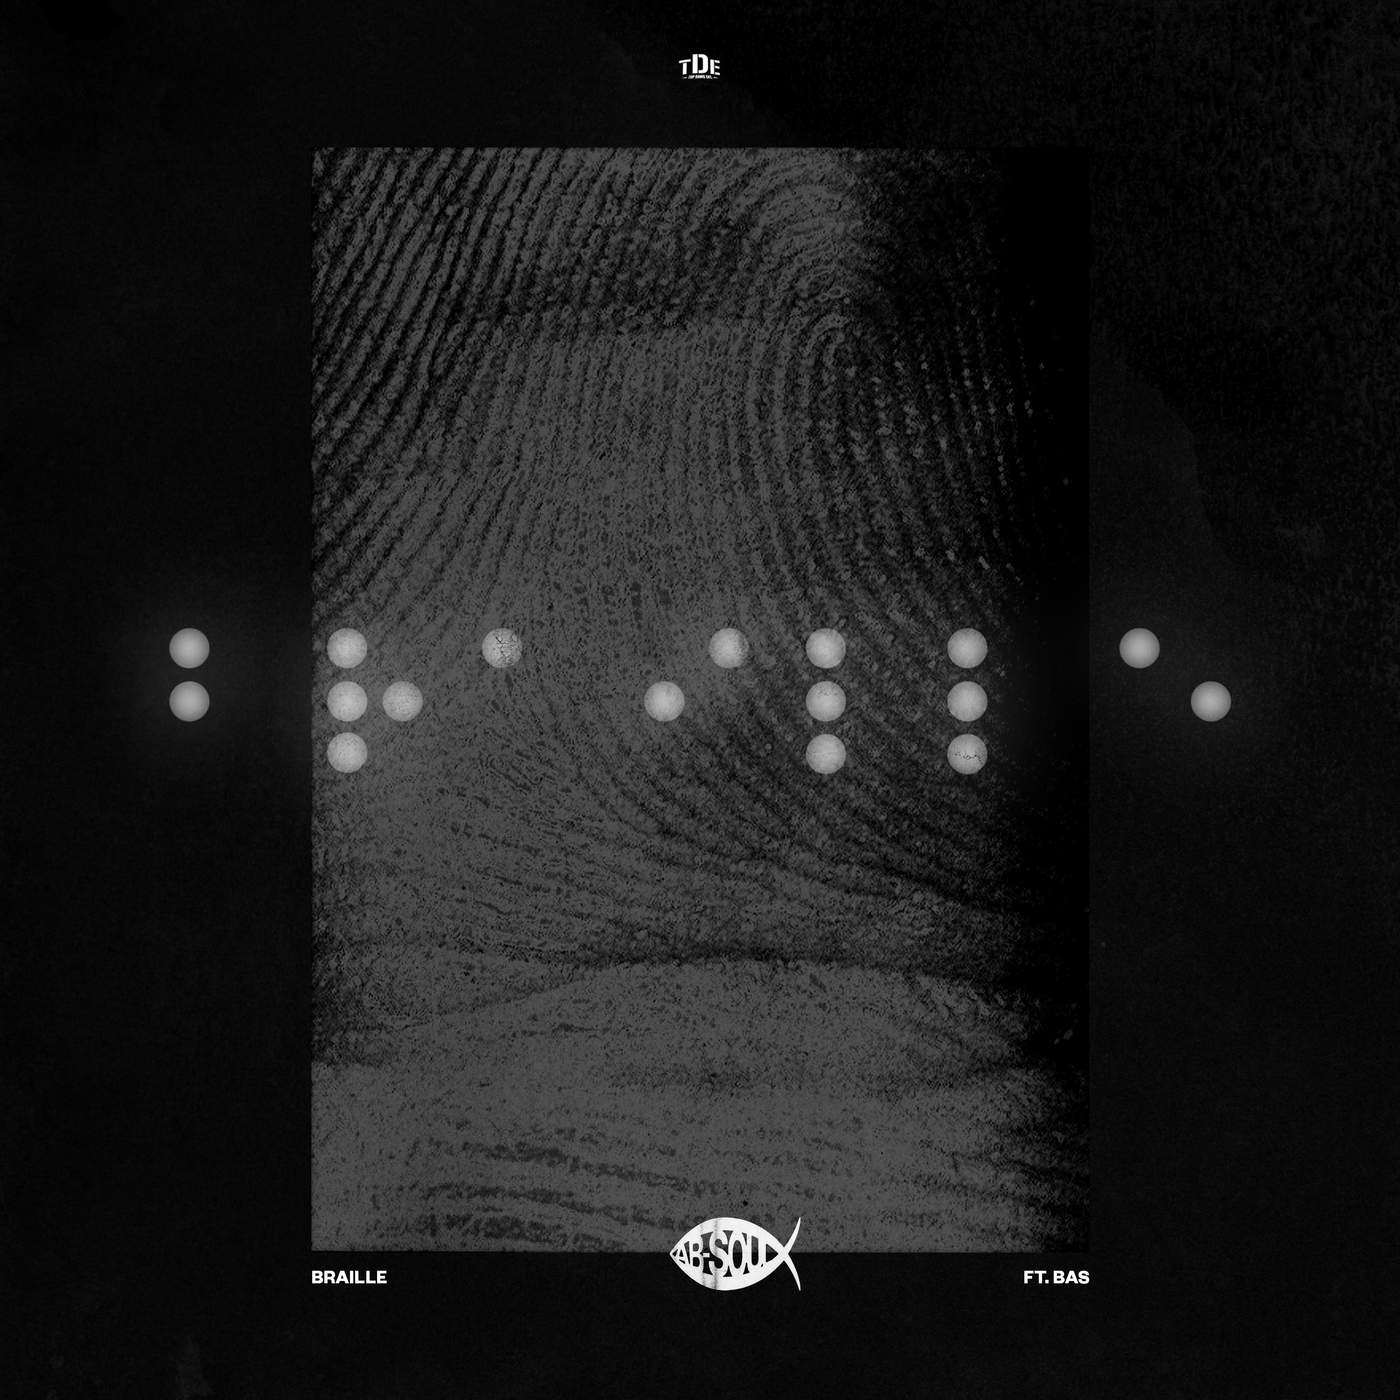 Braille (feat. Bas) - Single